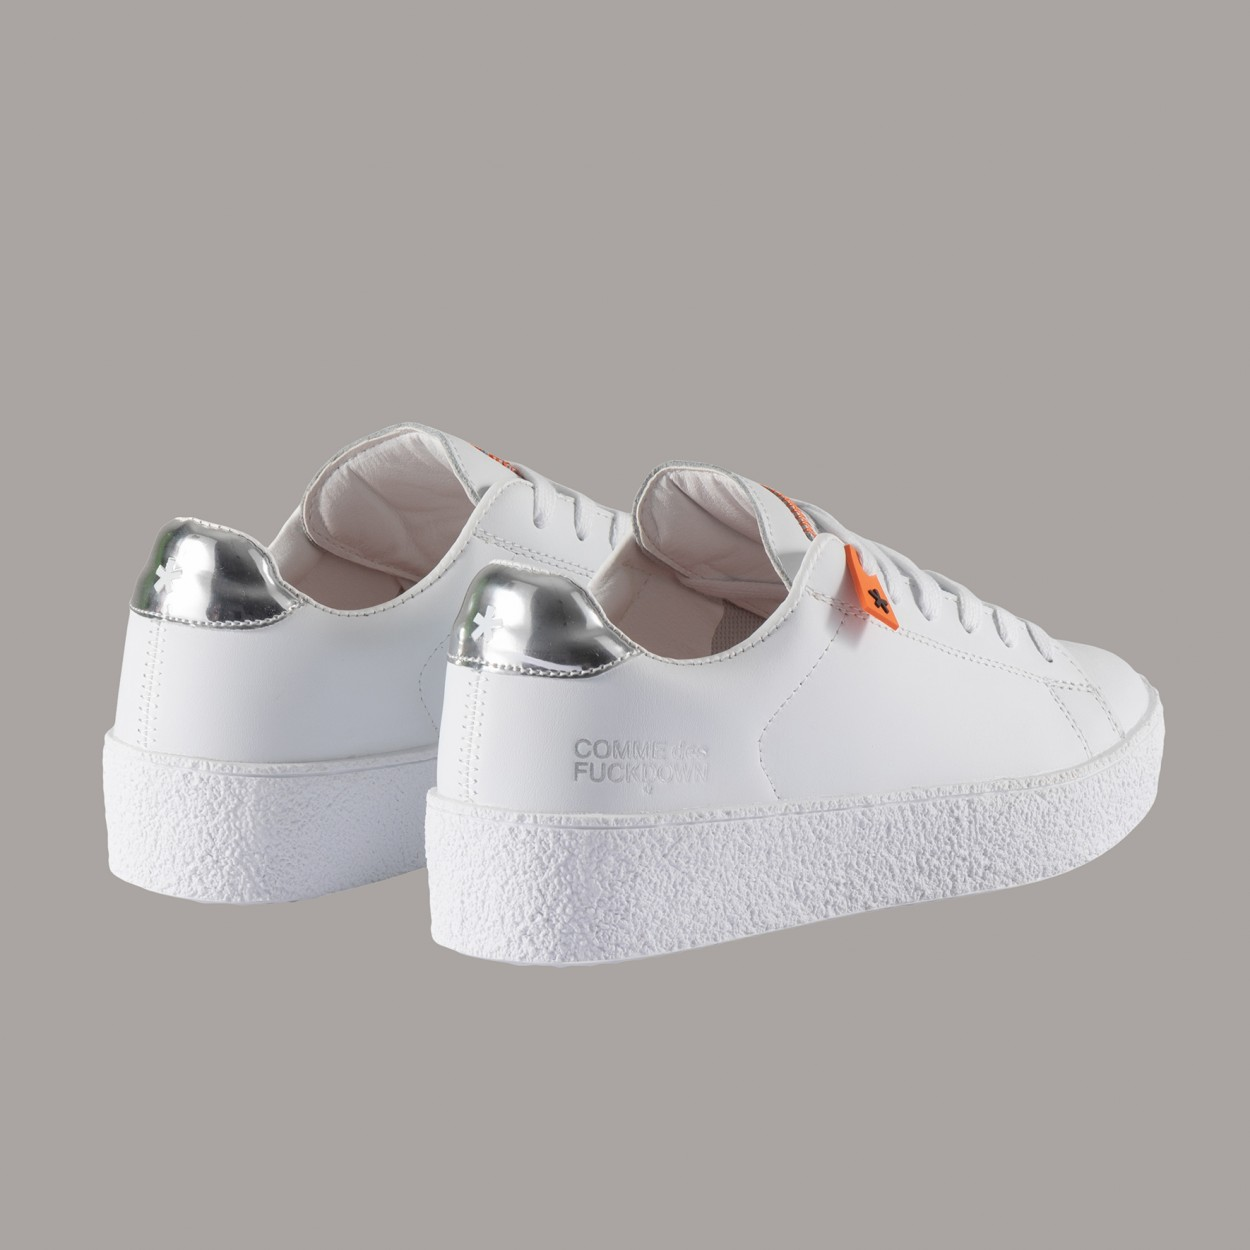 SNEAKER - CDF14STREETBAC - COMME DES FKDOWN